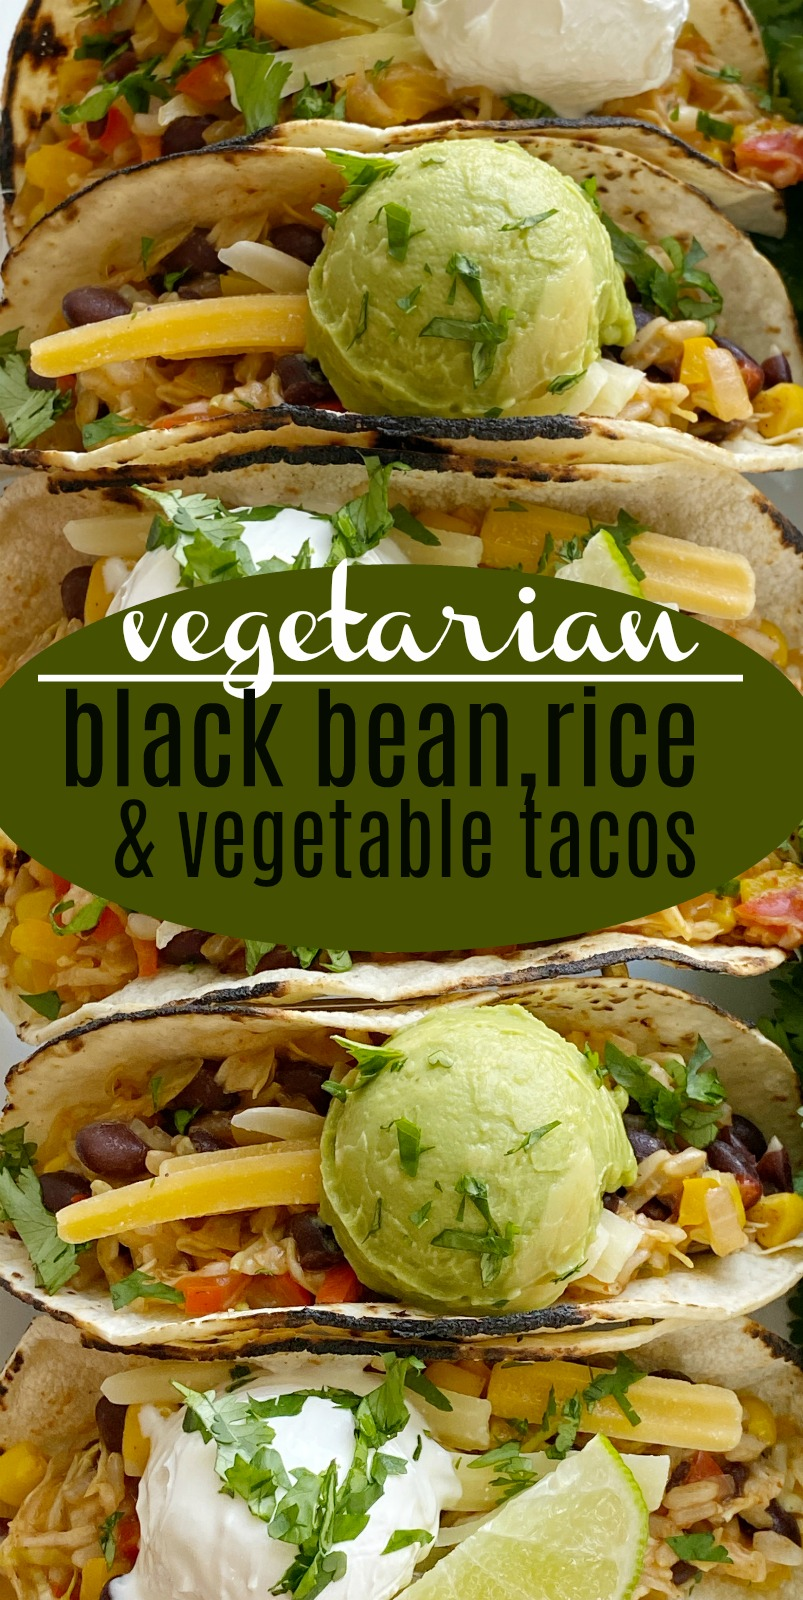 Black bean, rice, & vegetable tacos | Vegetarian Recipe | Meatless Recipe | Delicous vegetable tacos are the perfect vegetarian recipe for Taco Tuesday! Cabbage, bell peppers, corn, black beans, onion, brown rice, and fresh lime. #vegetarianrecipes #meatlessrecipe #tacos #vegetarianfood #recipeoftheday